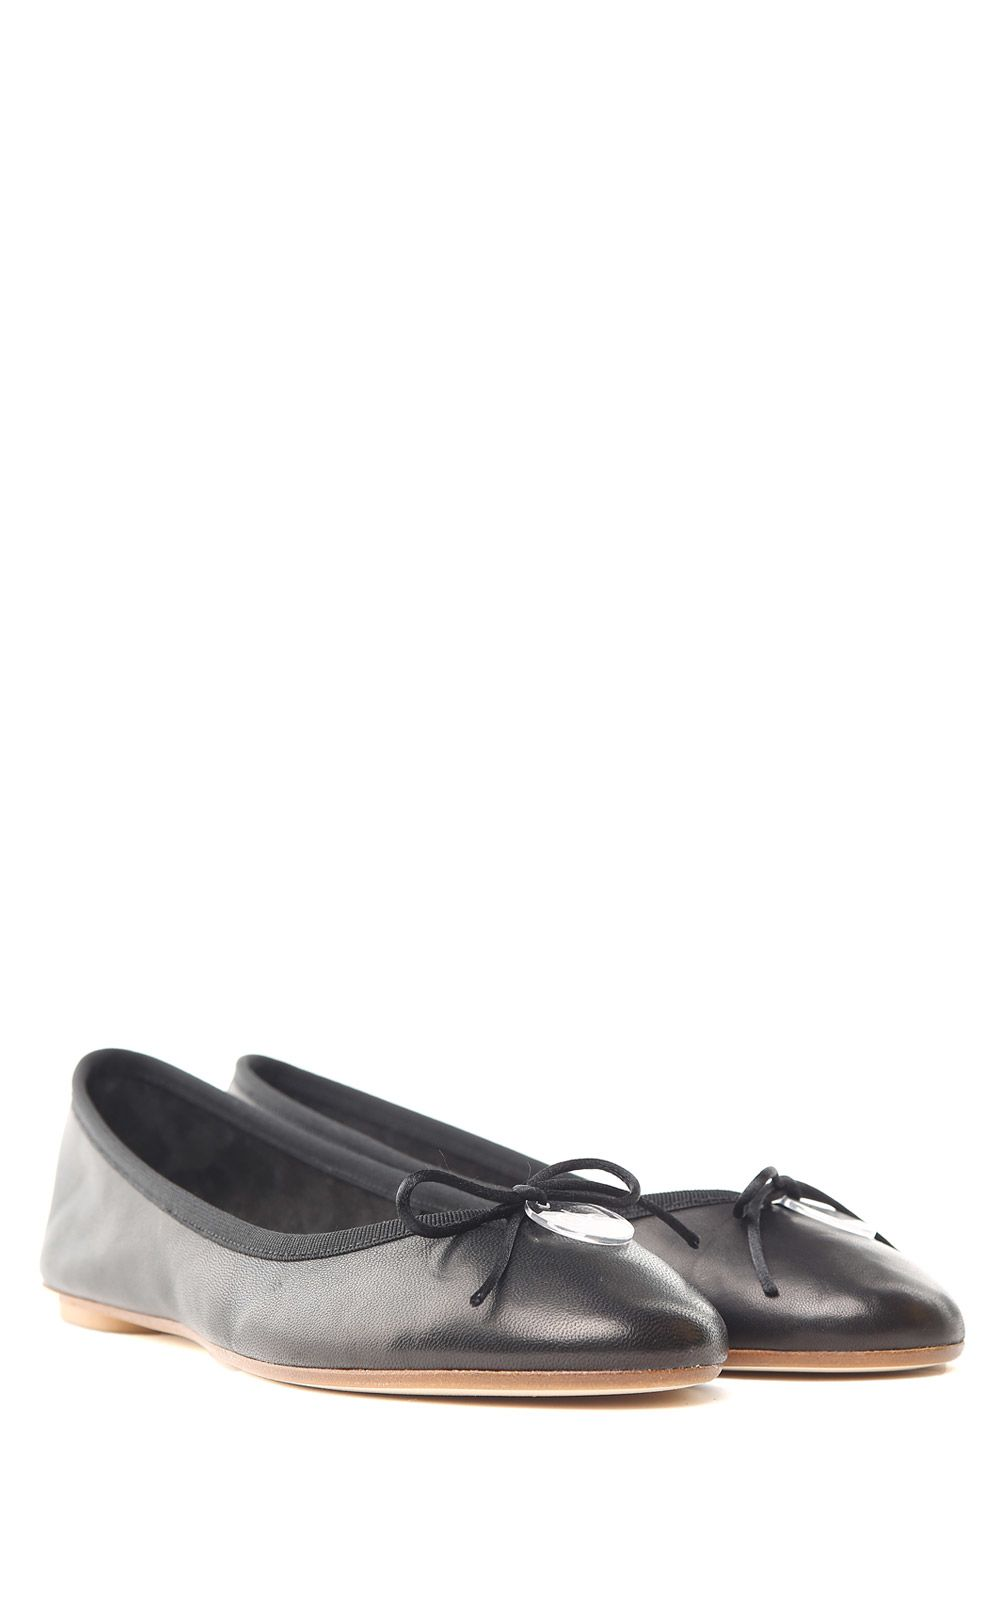 Annette leather ballet flats Anna Baiguera Sale Low Price Latest Sale Online 9K9Nllng